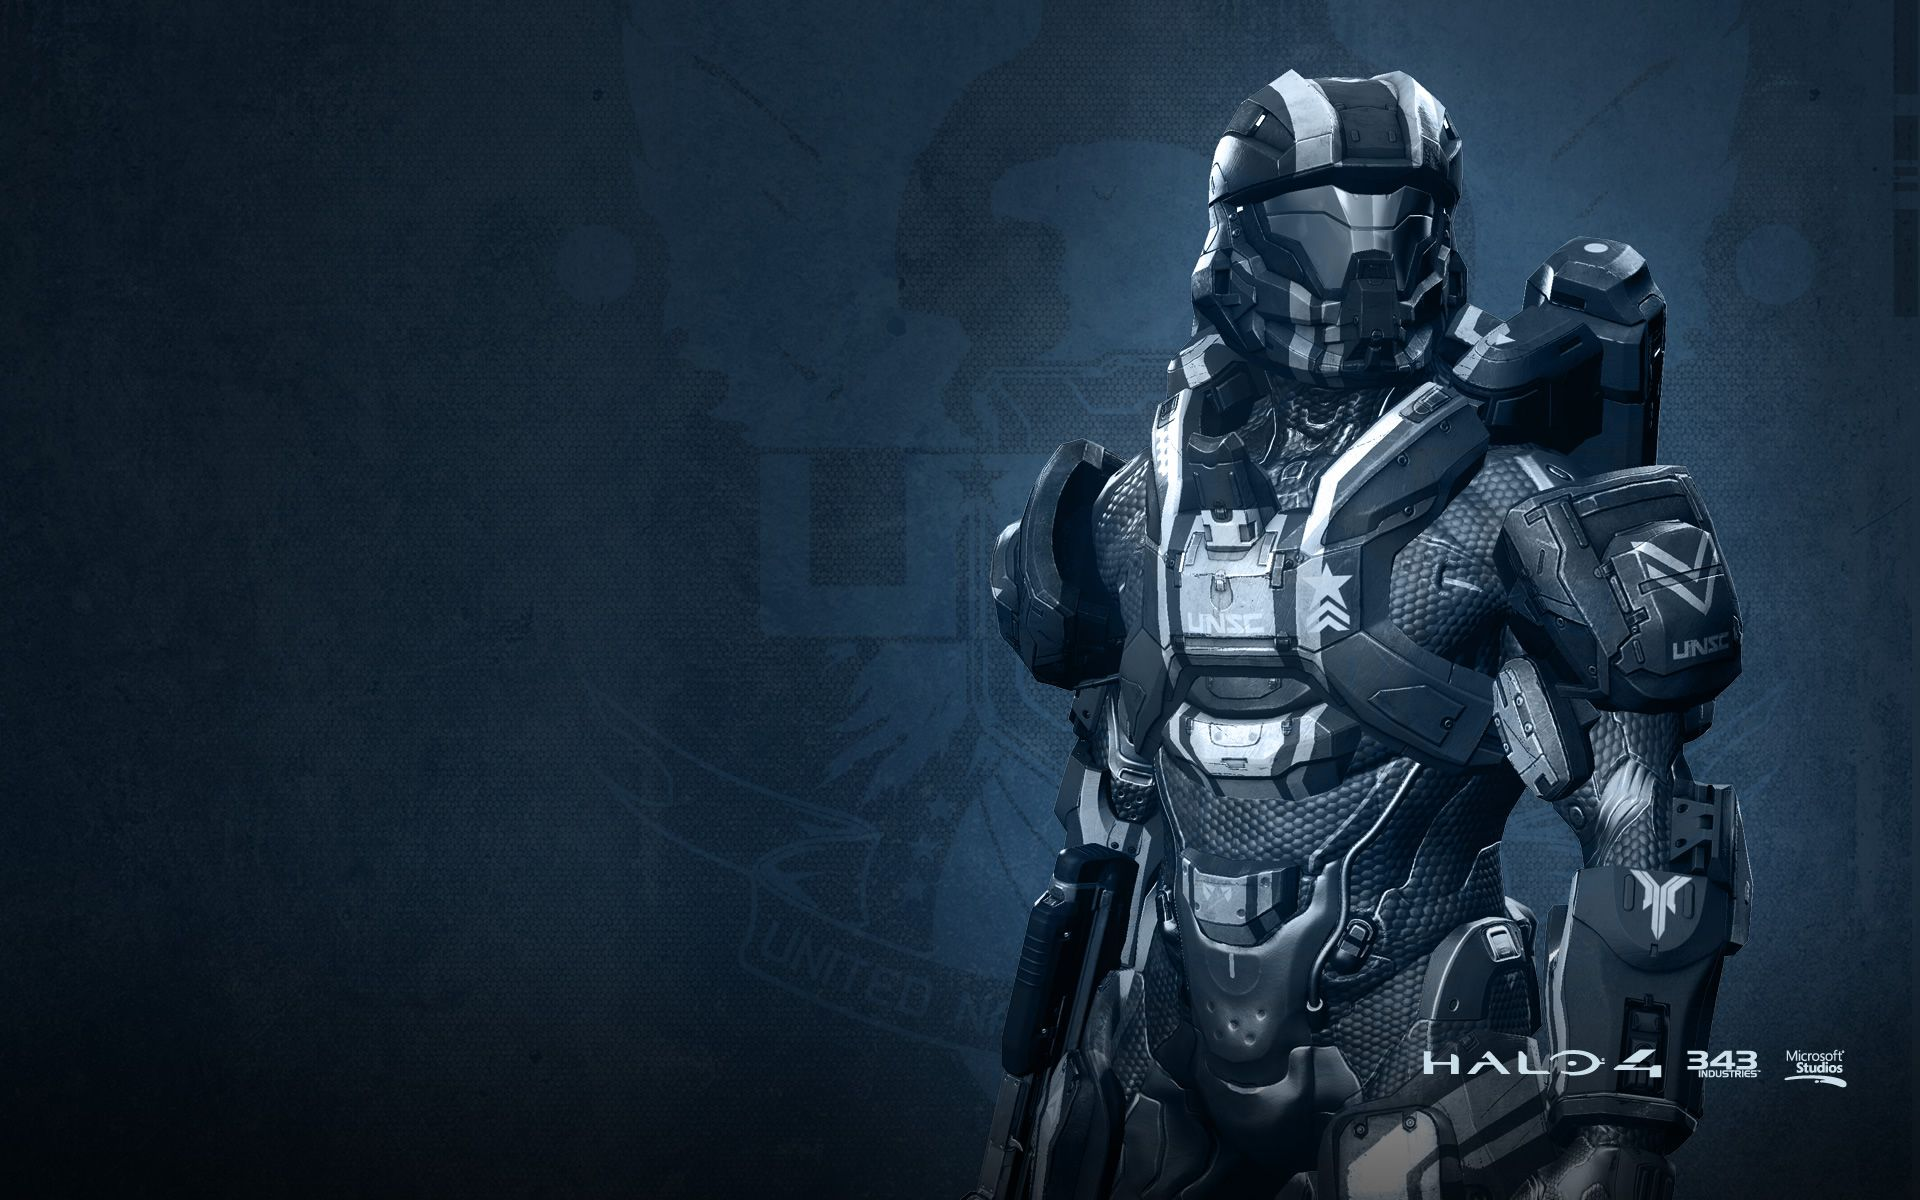 undefined Halo 4 Wallpapers HD 51 Wallpapers Adorable 1920x1200